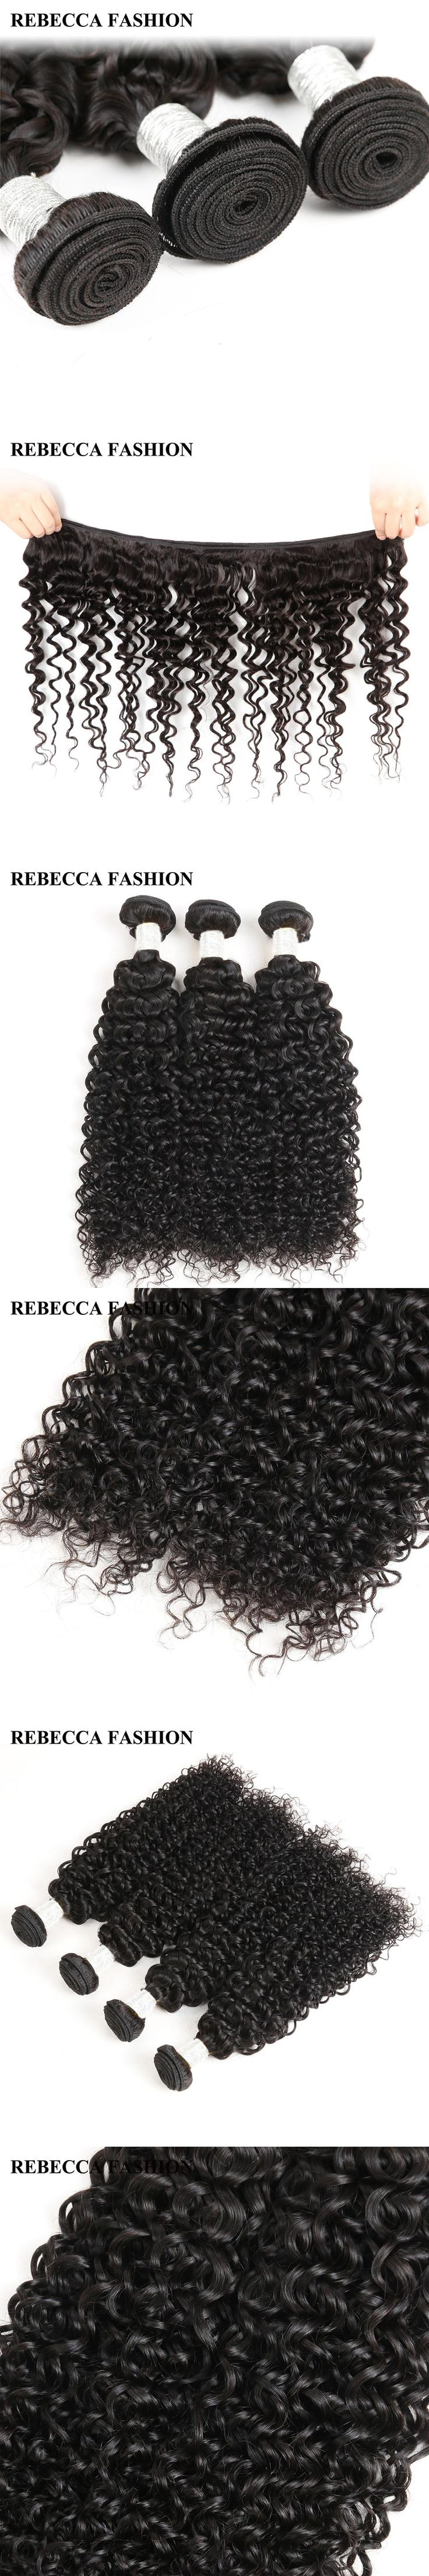 Rebecca Brazilian Curly Hair Weave Bundles Remy Human Hair Bundles 3PC Unprocessed Hair Extensions 300g 8 to 30inch Hair Weft